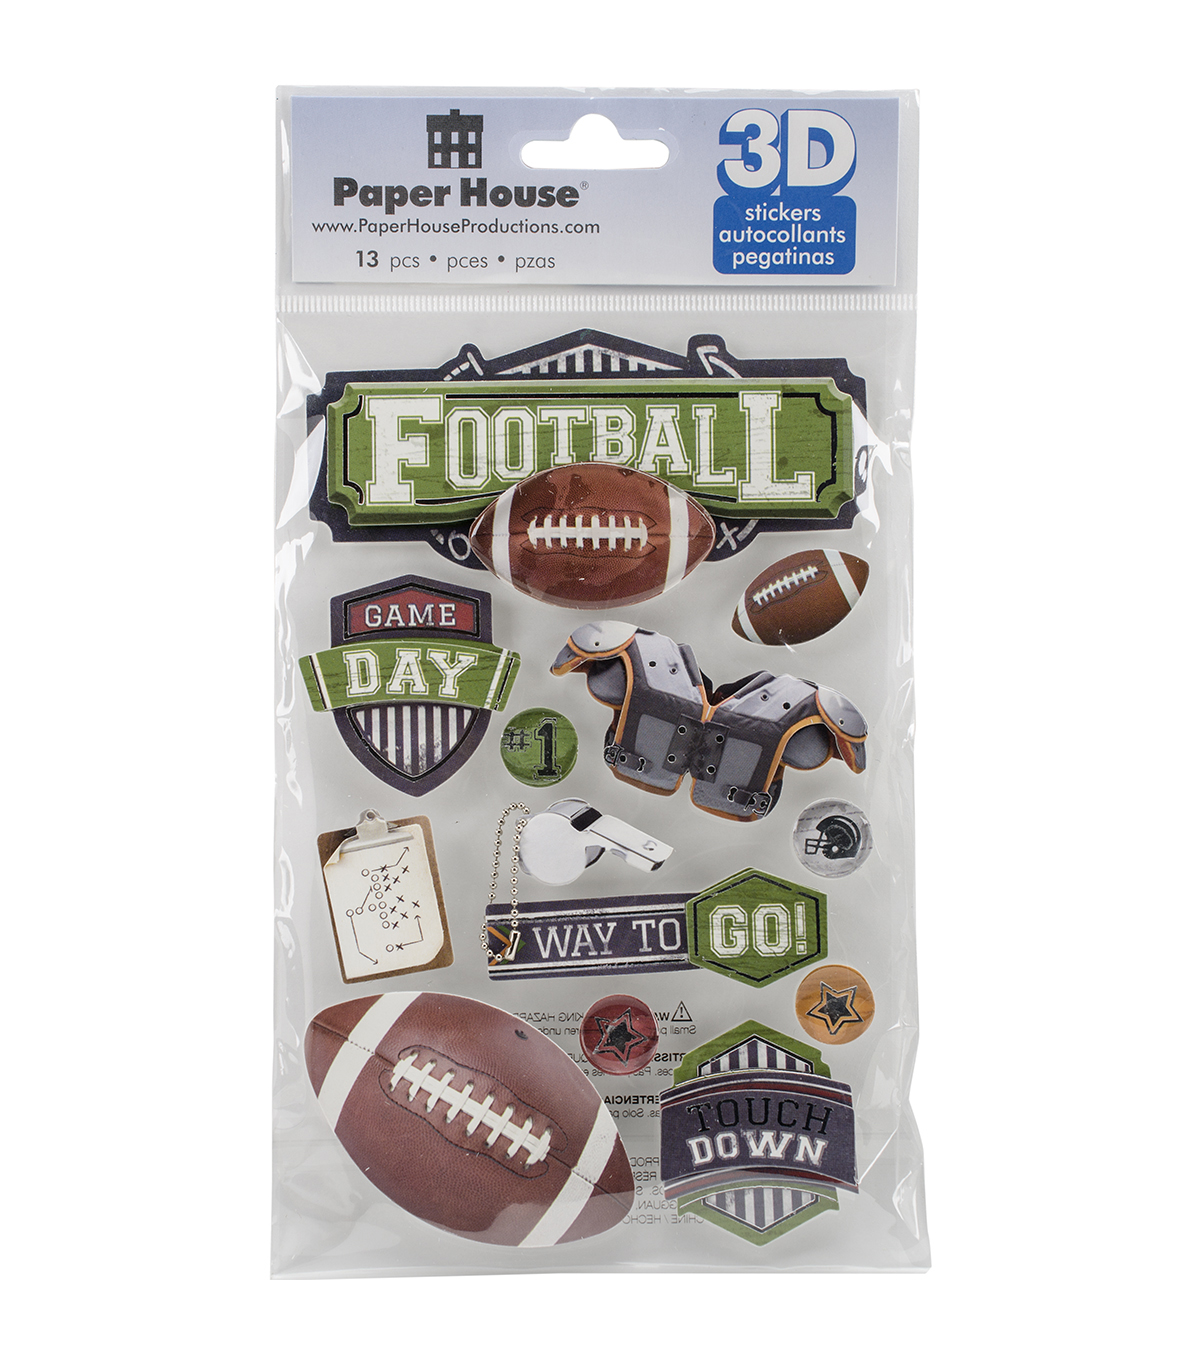 Paper House 3D Stickers-Football #2